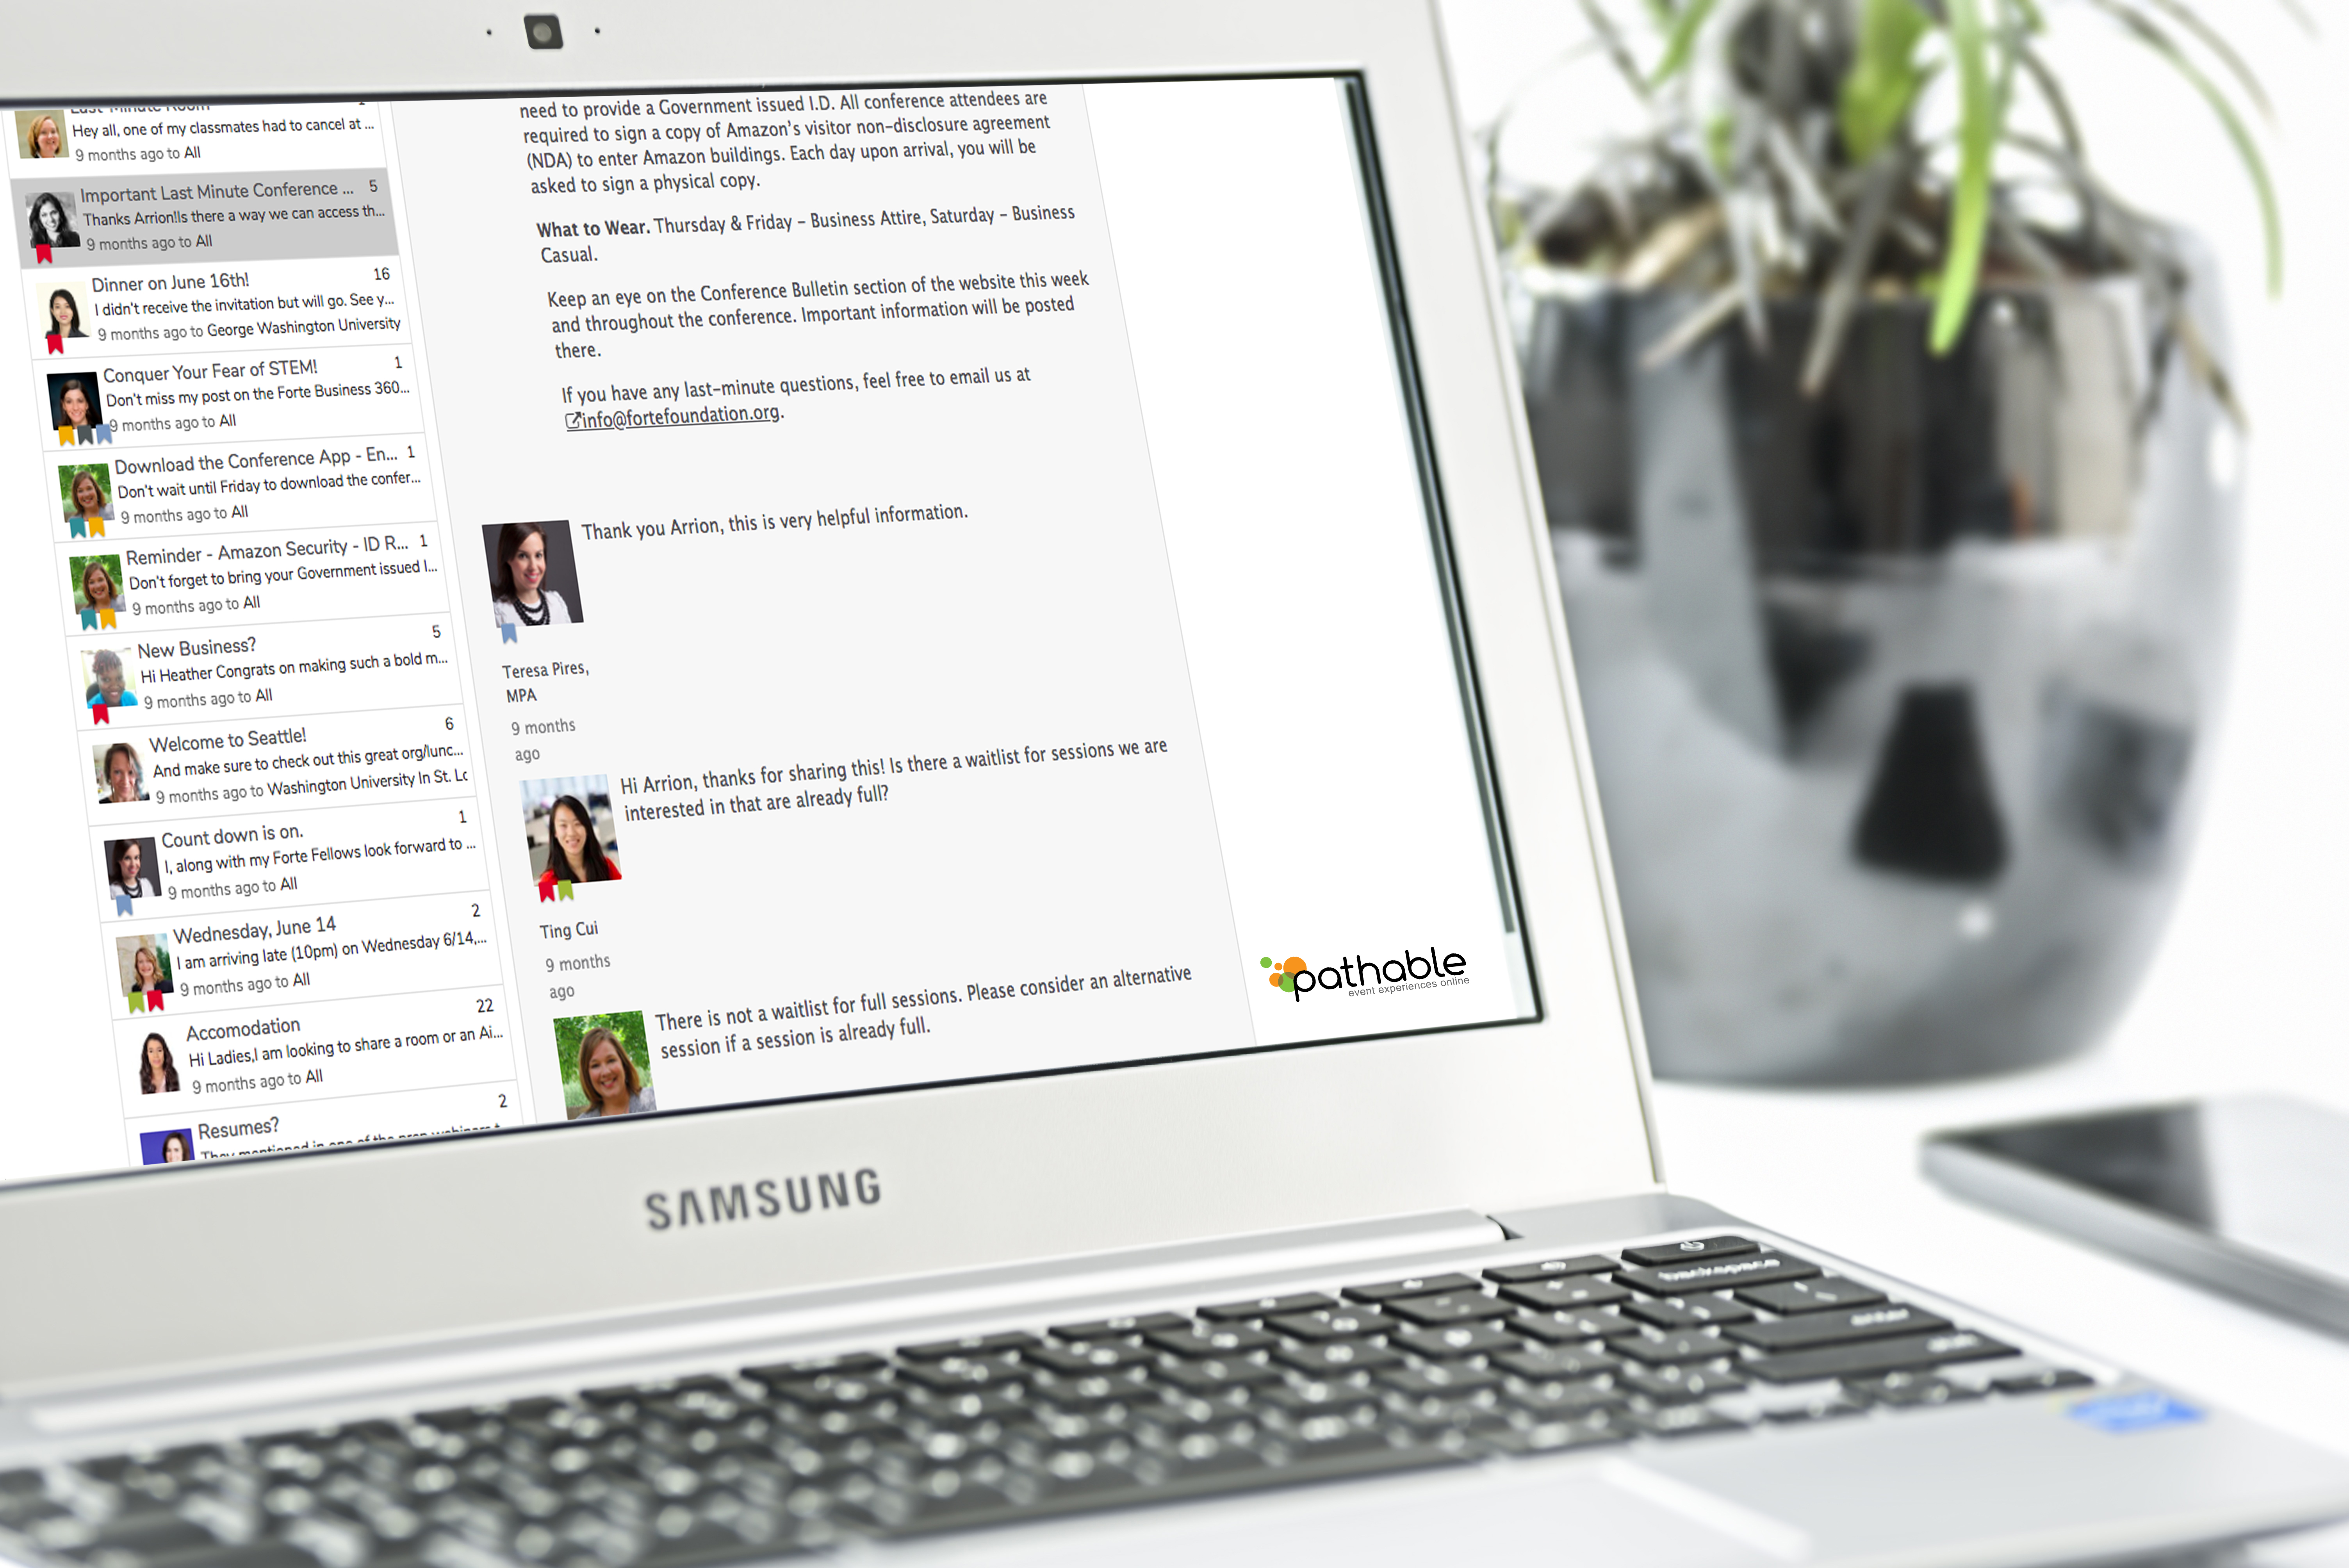 Pathable Demo - Pathable's Discussion Board